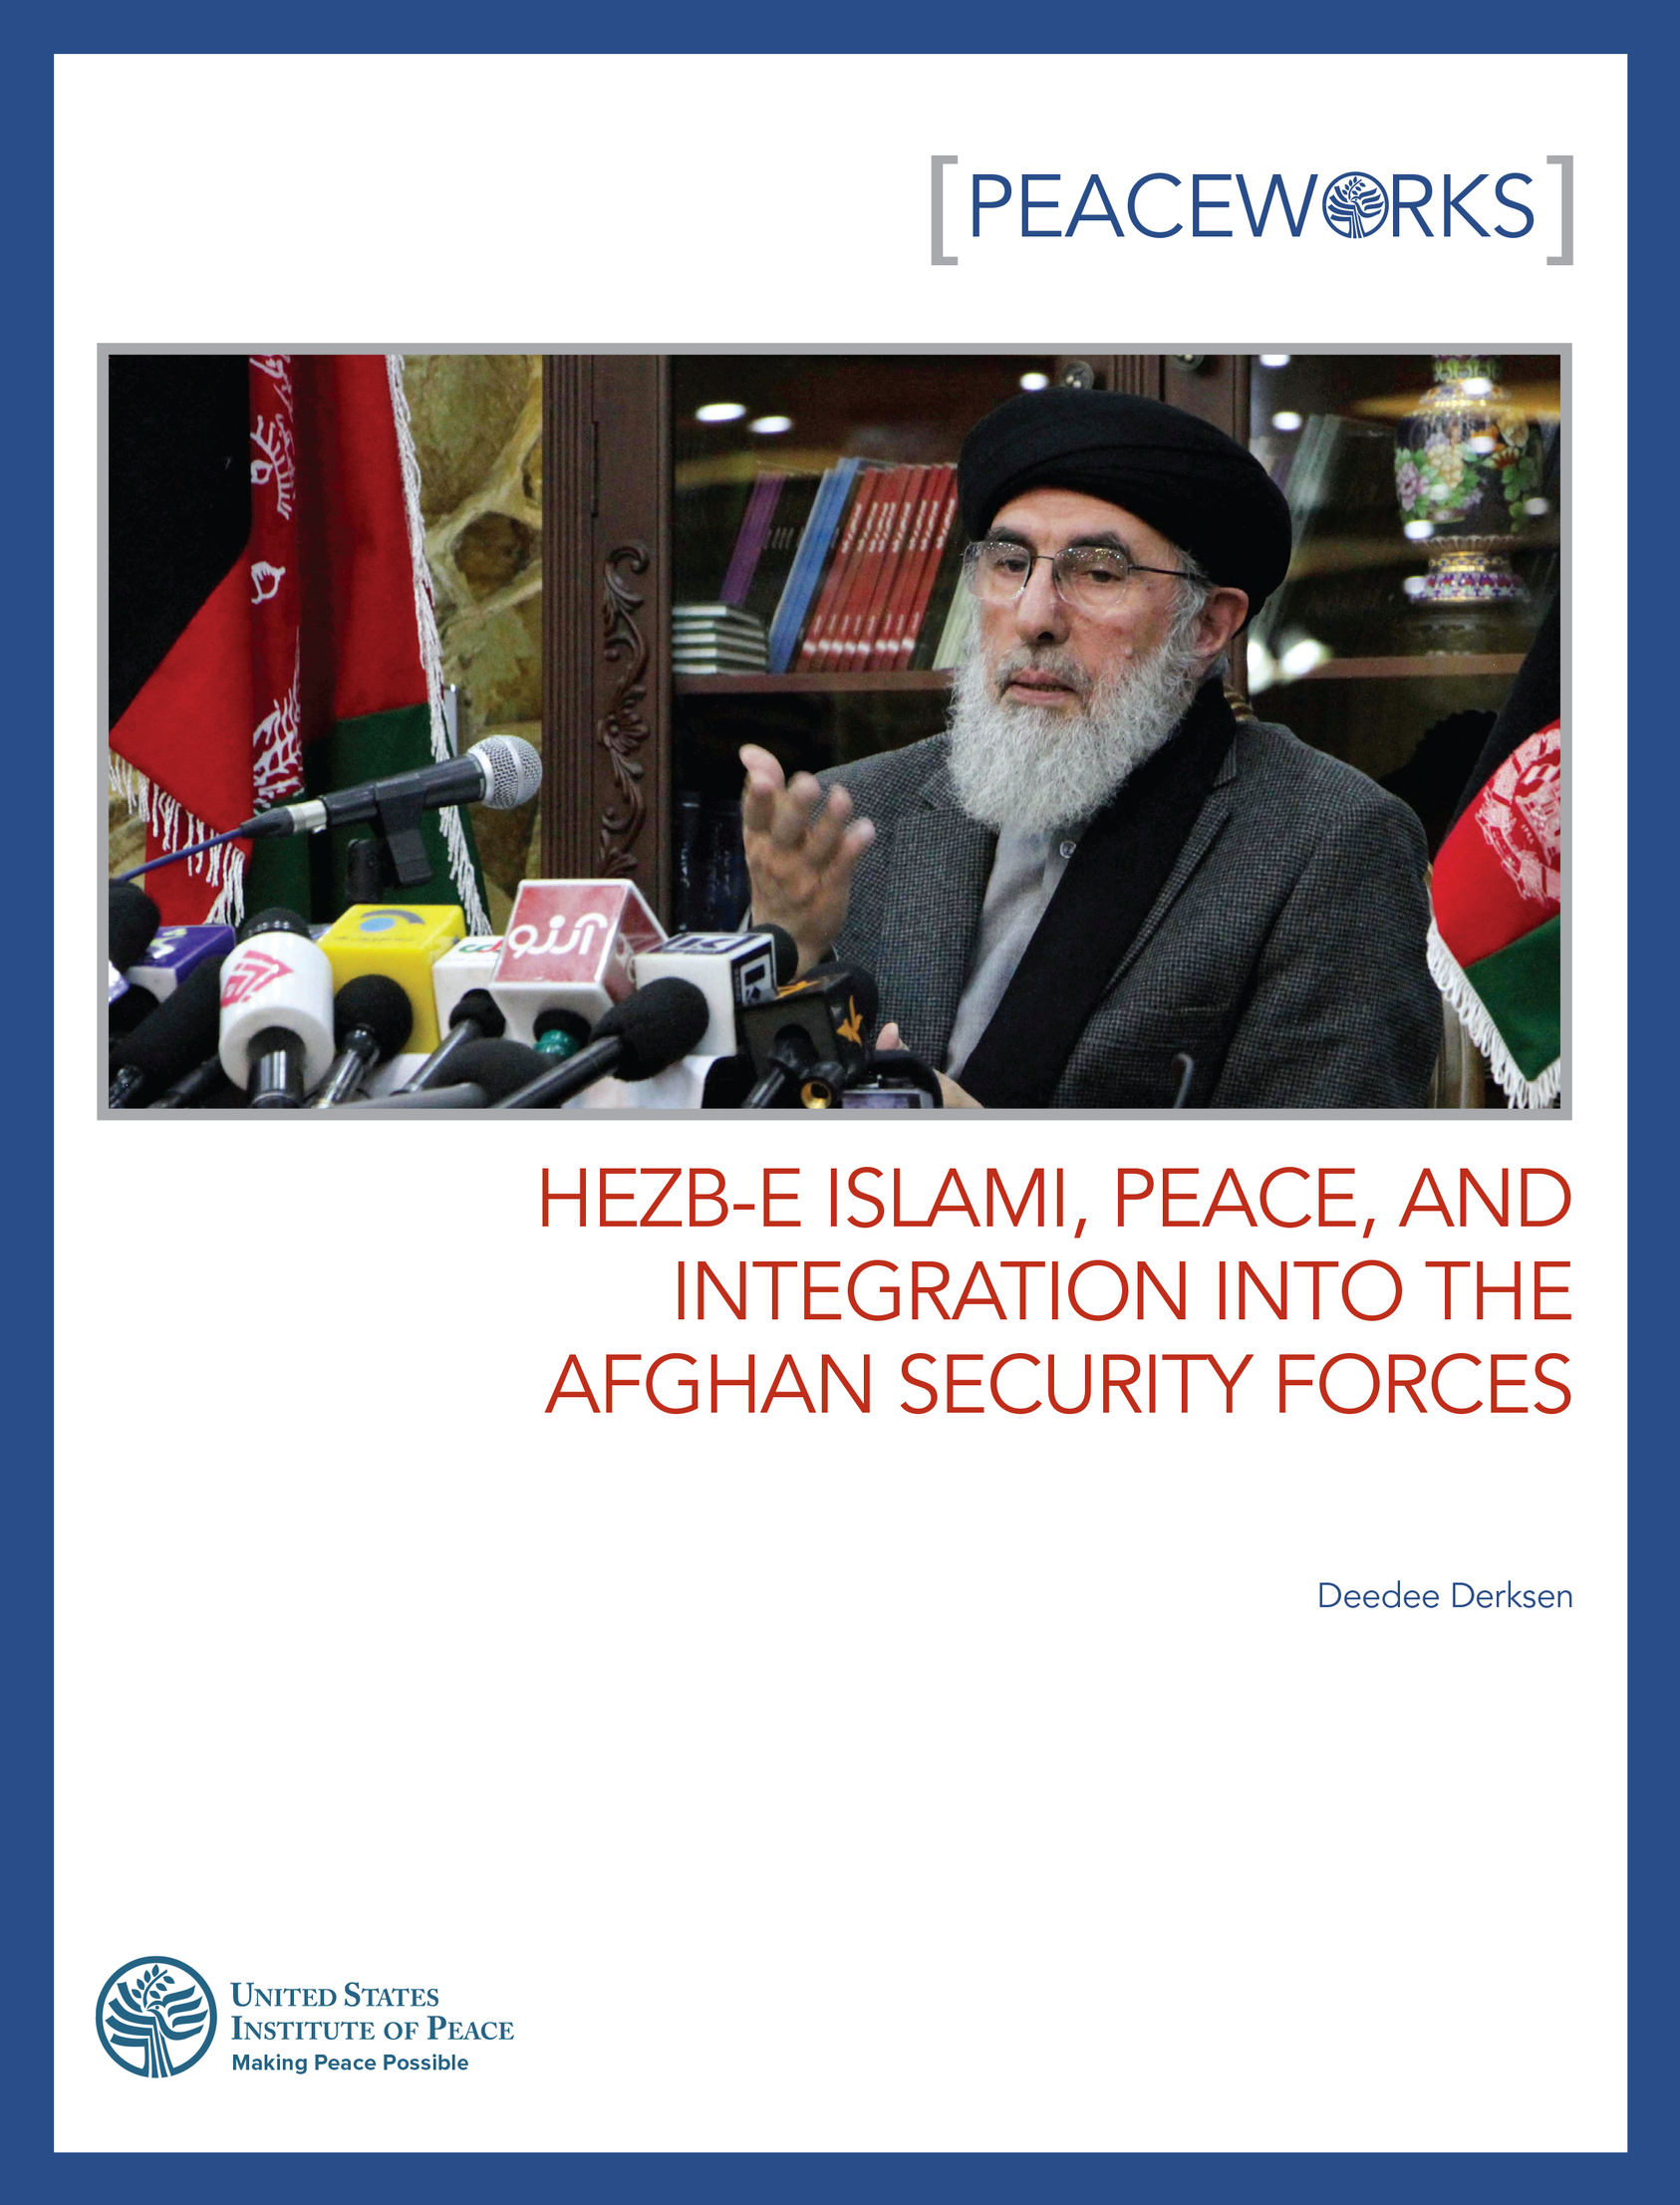 Hezb-e Islami, Peace, and Integration into the Afghan